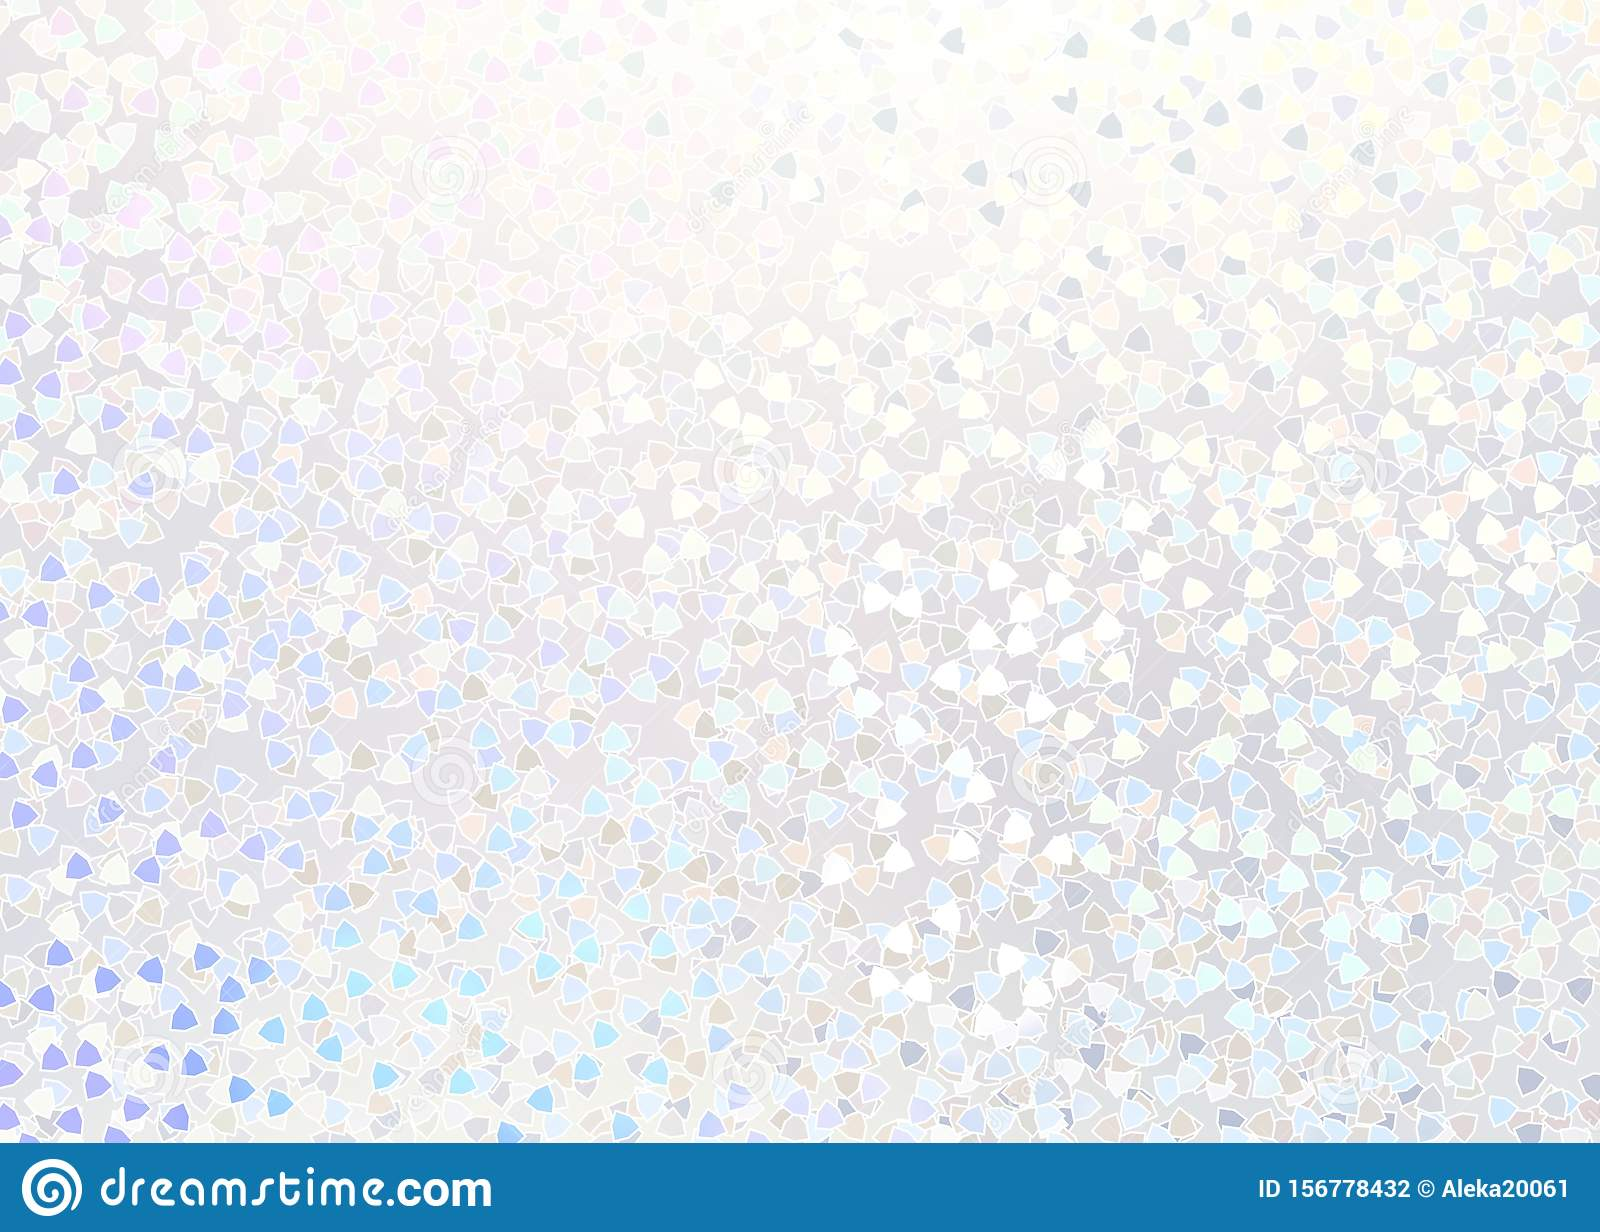 Wedding shimmer abstract subtle background. White iridescent sequins pattern. Pearl shine texture. Brilliance light illustration.